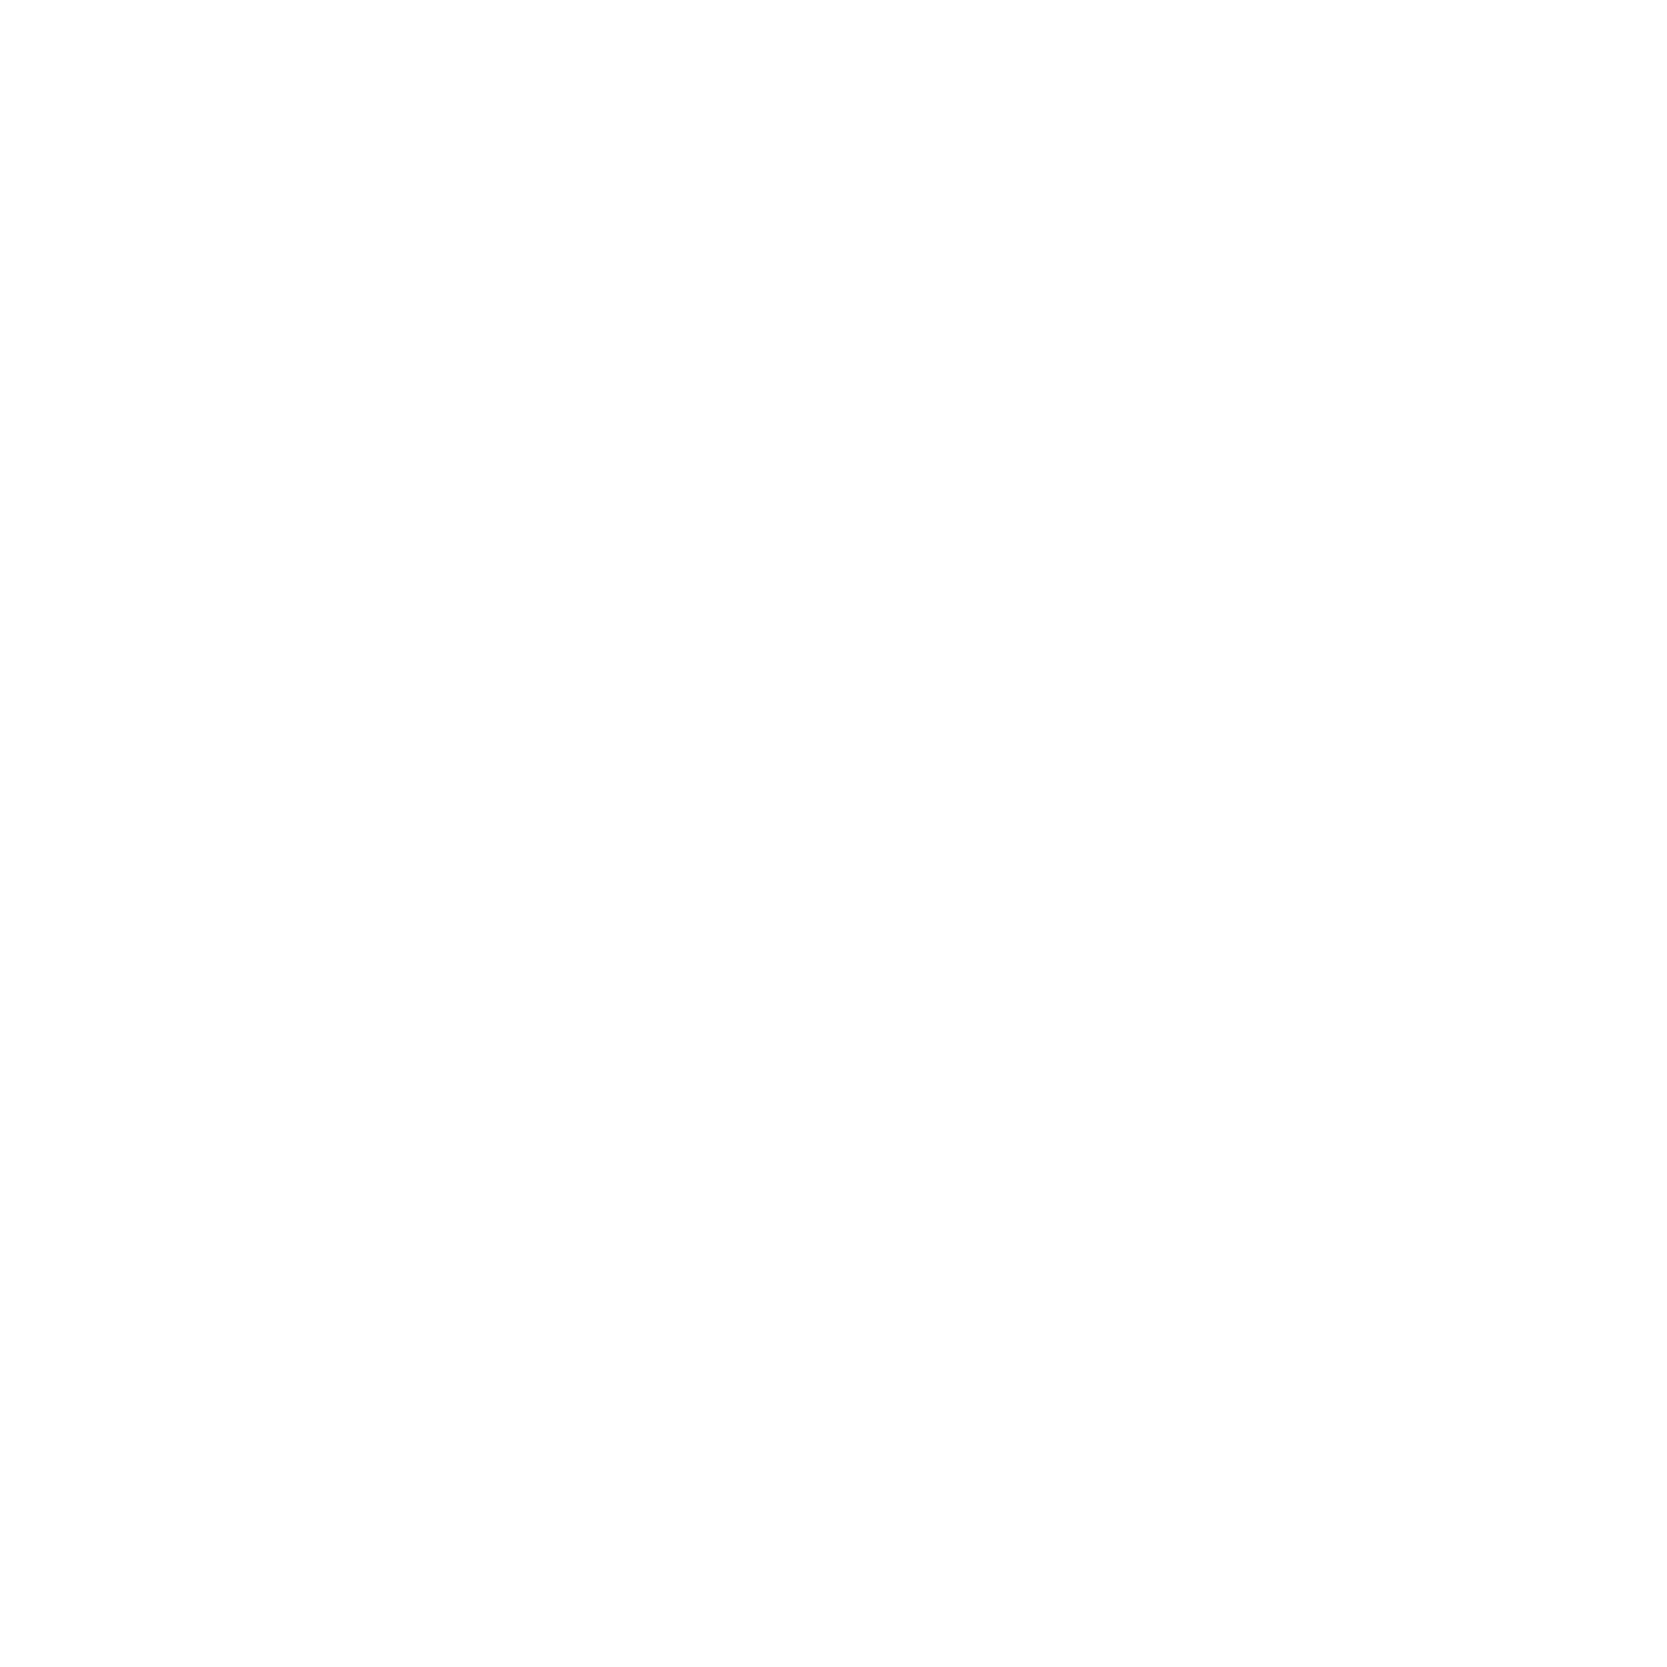 Clean & Safe Visit Portugal